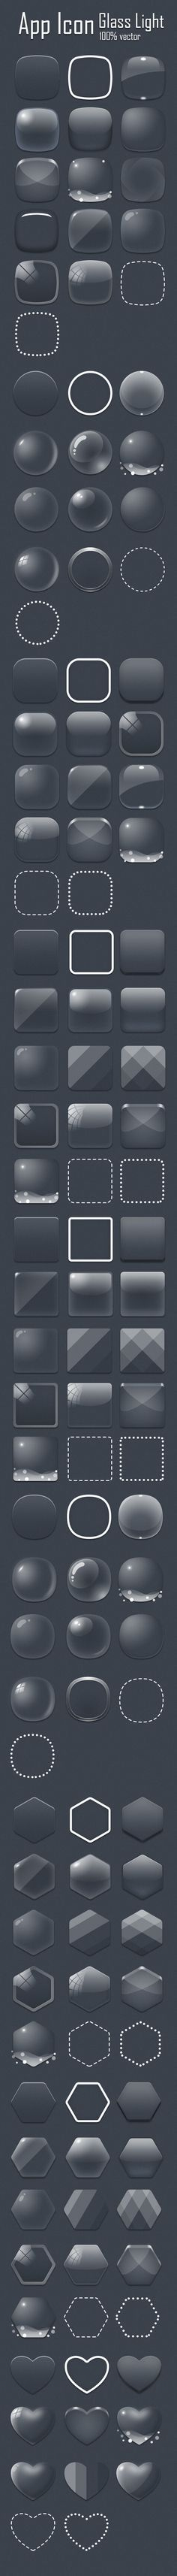 Glass App Icon : Hav...@茶小白采集到GUI(2314图)_花瓣UI/UX